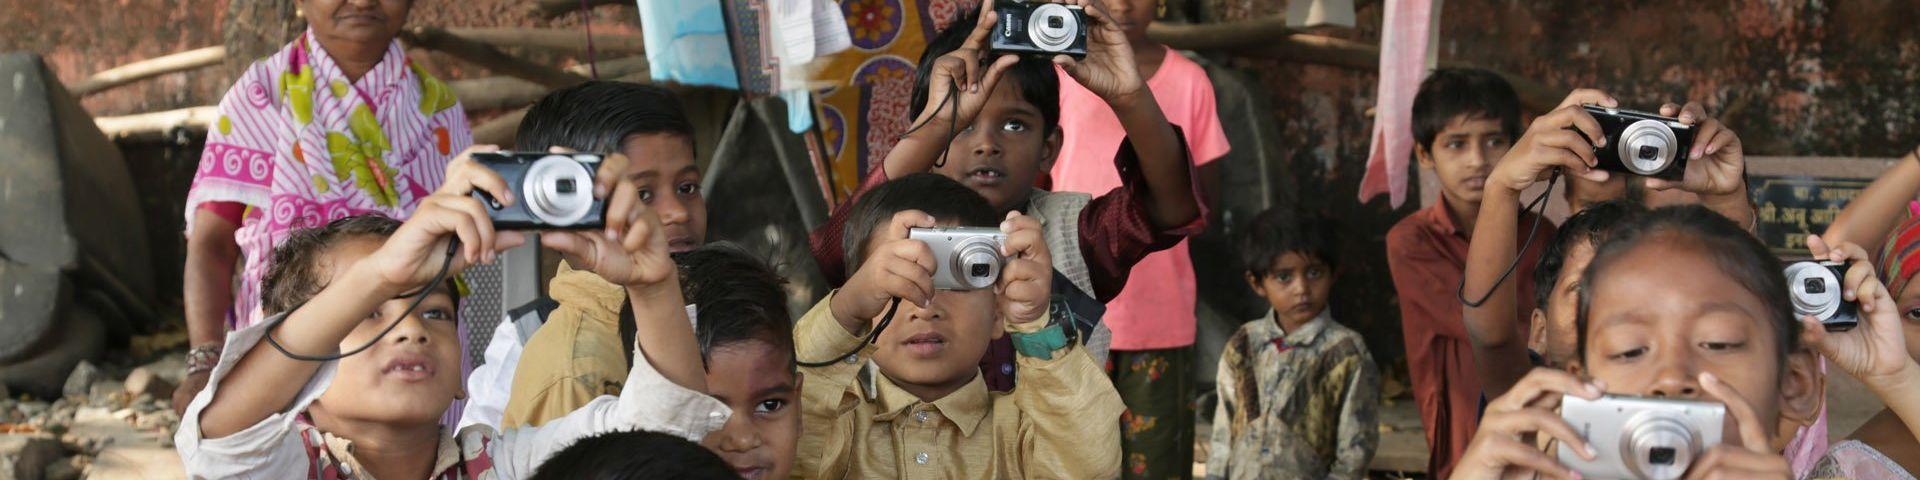 Little children in a group, holding their Canon cameras up to take a photo.